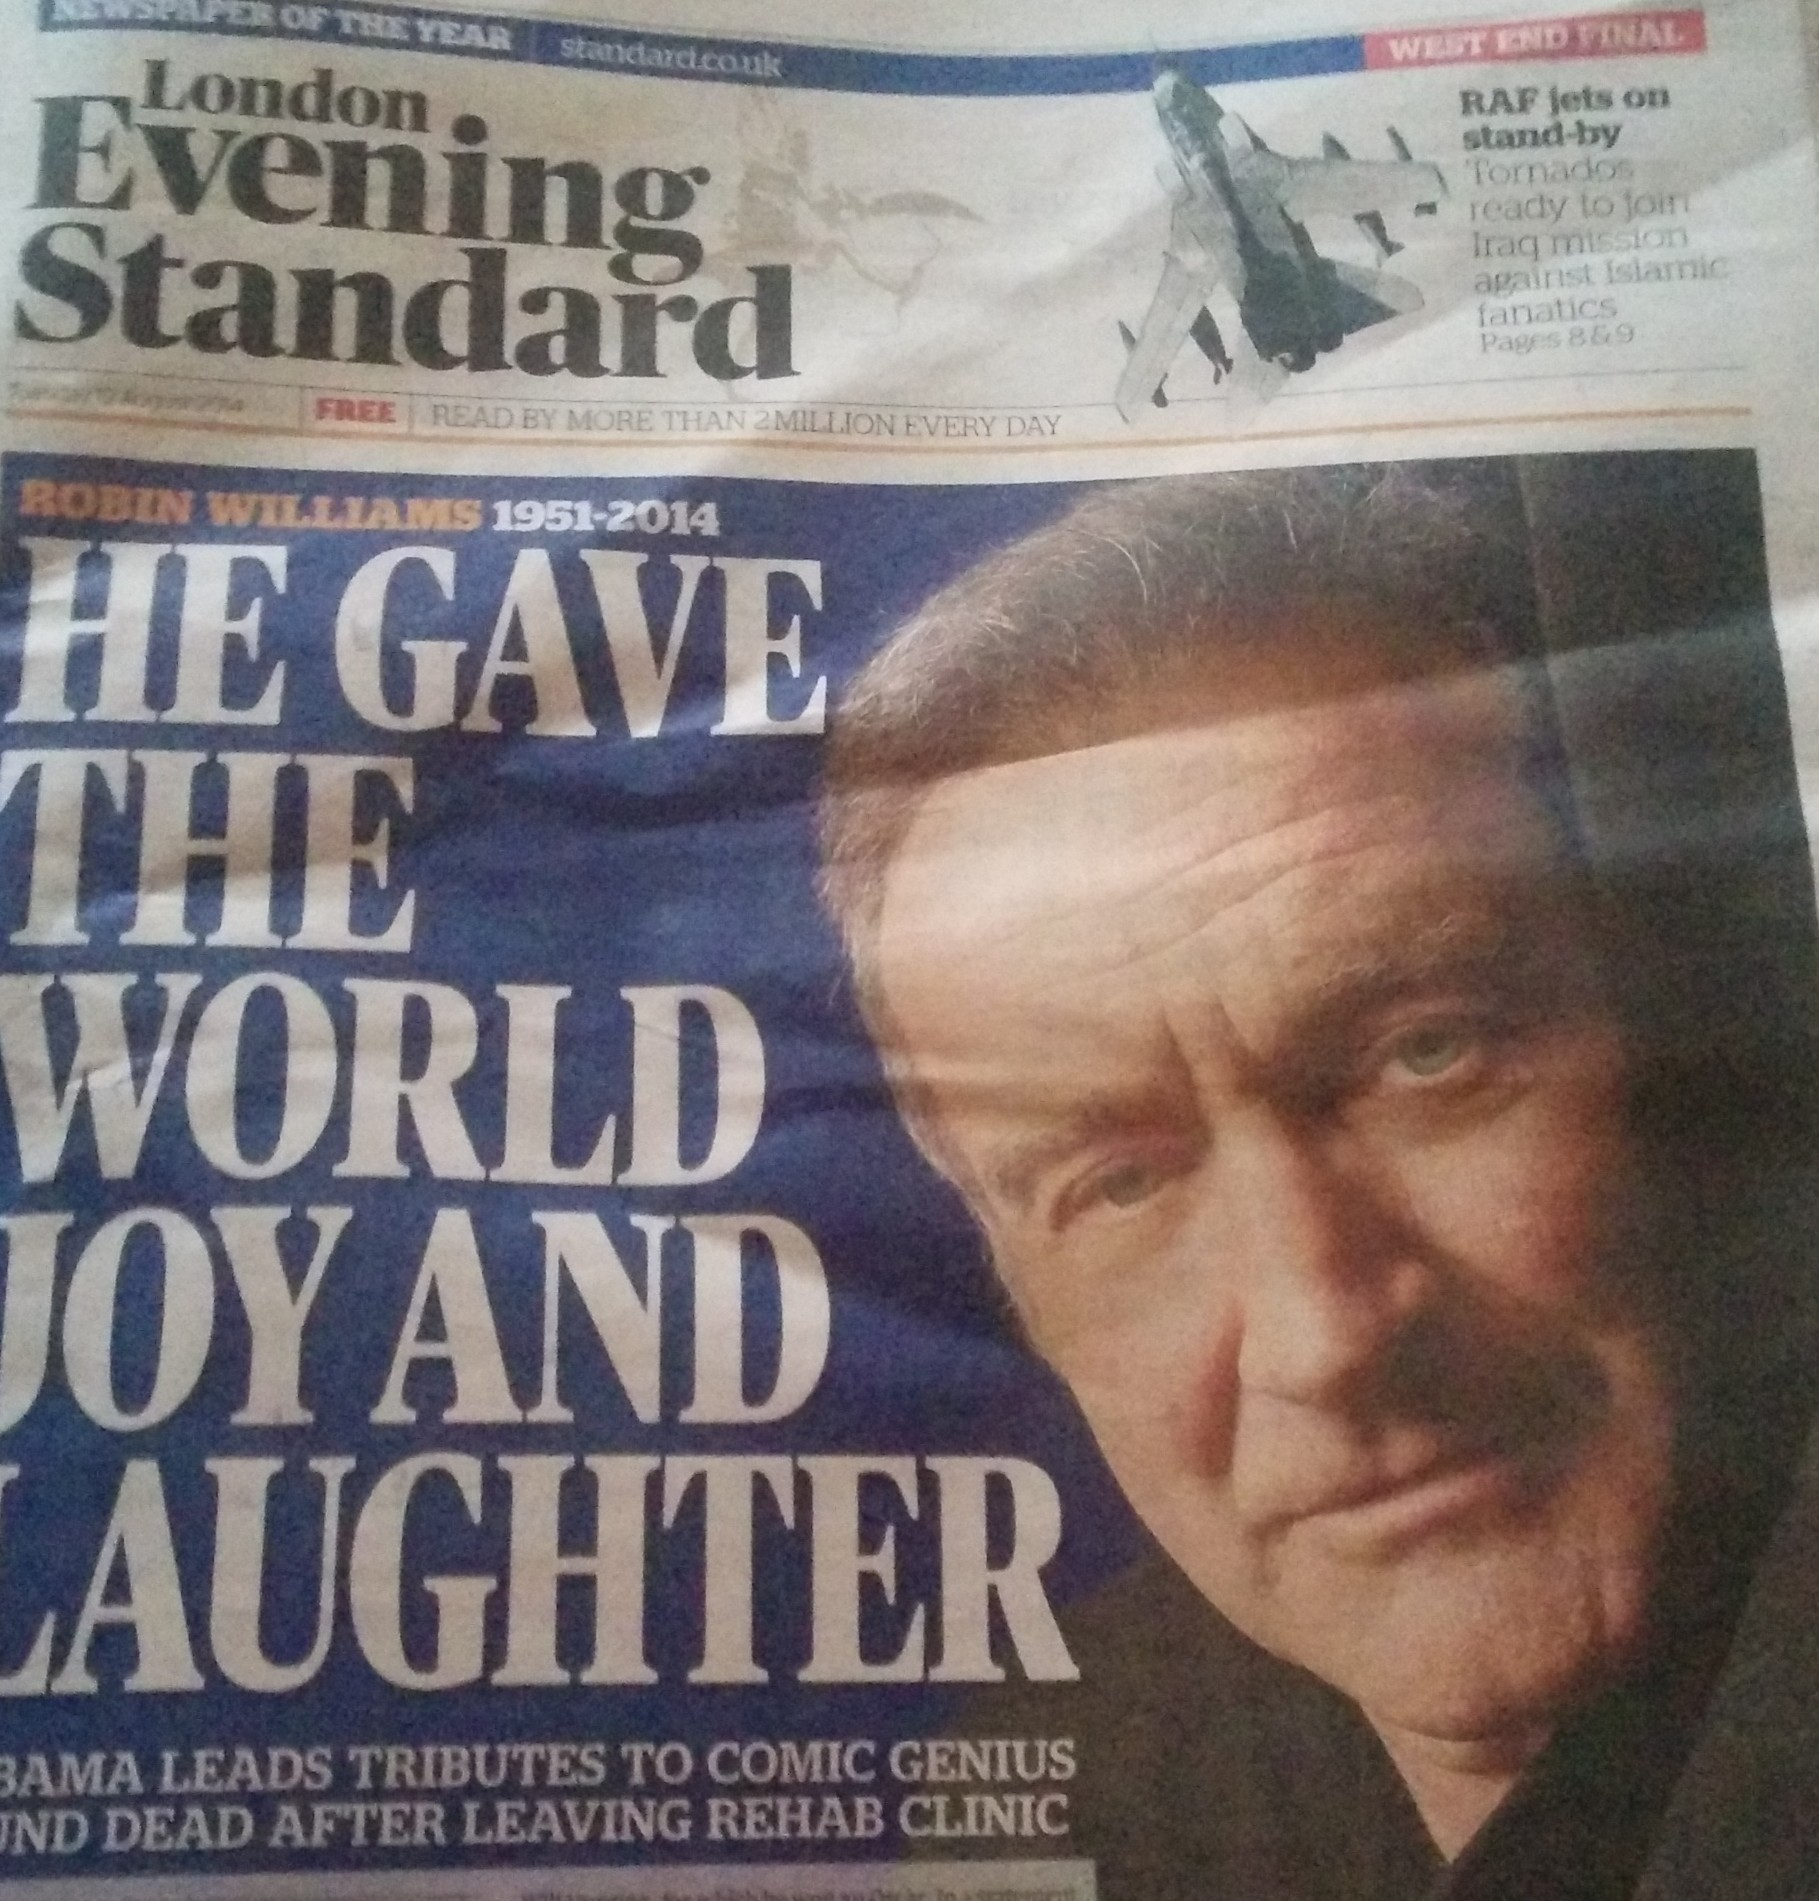 Robin Williams' suicide reported in Evening Standard